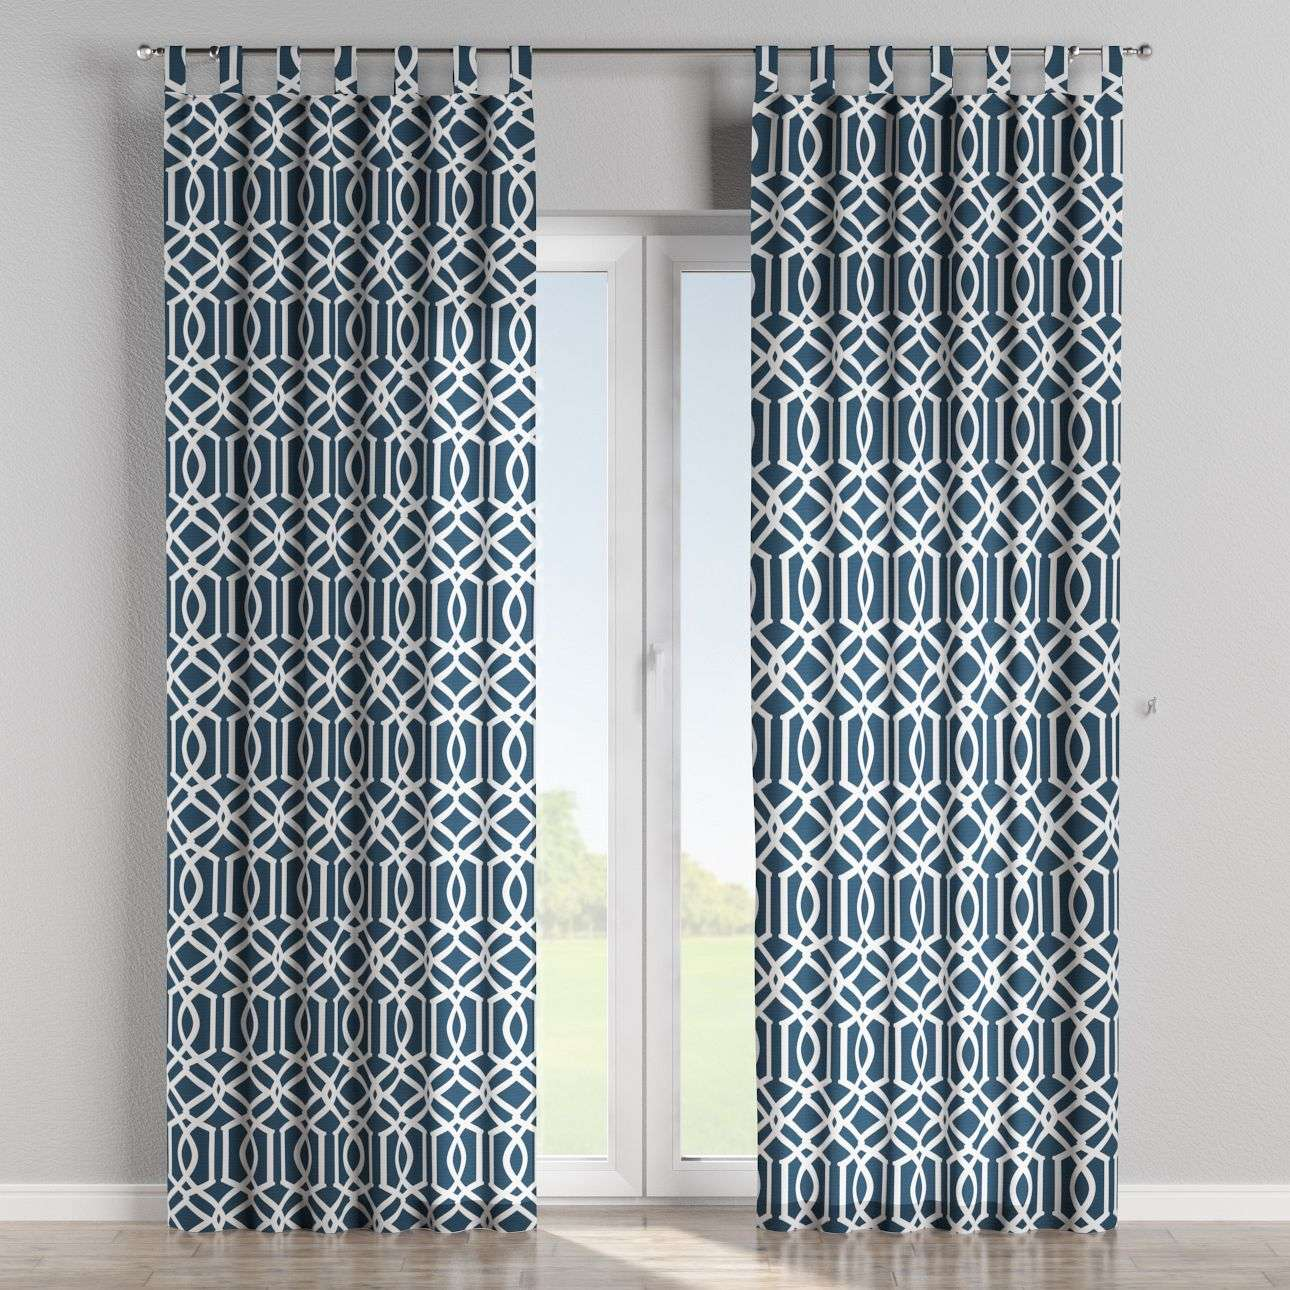 Tab top curtains in collection Comics/Geometrical, fabric: 135-10